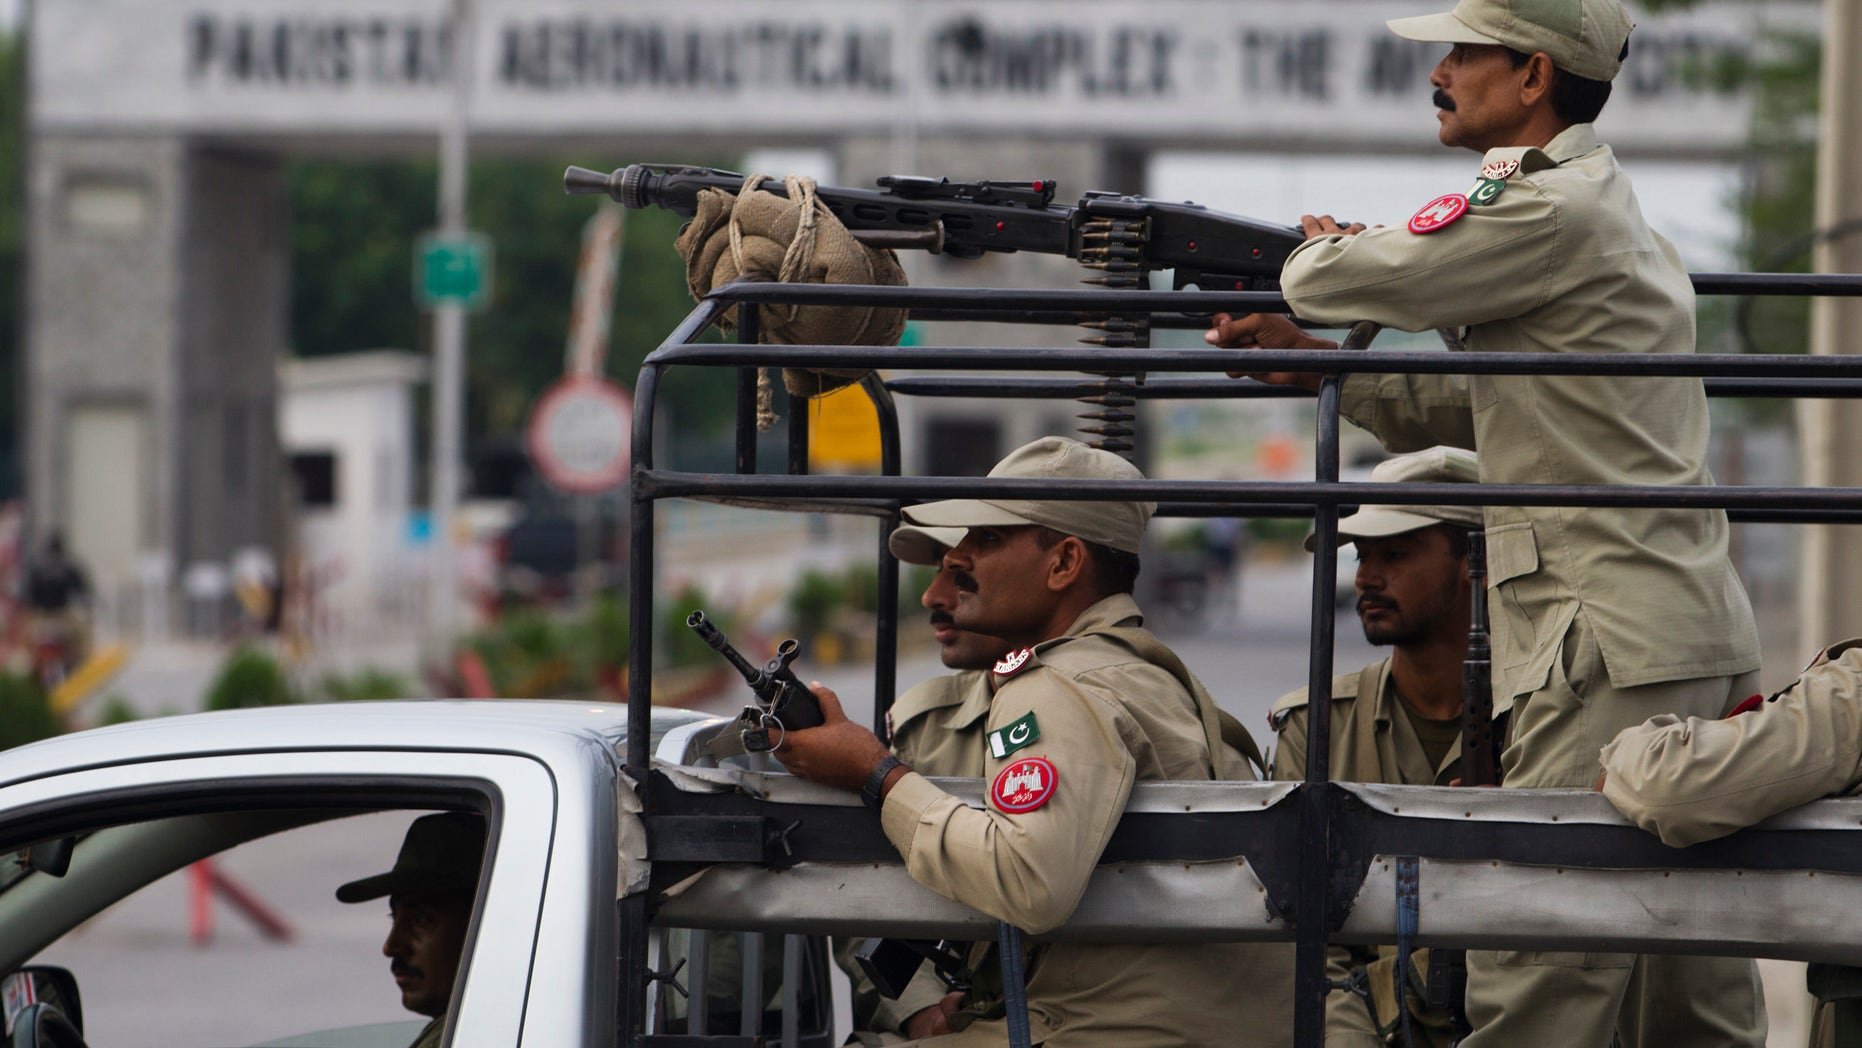 Aug. 16, 2012: Pakistani security personnel guard the main entrance of Pakistan air force base in Kamra, about 50 miles (85 kilometers) northwest of Islamabad, Pakistan.